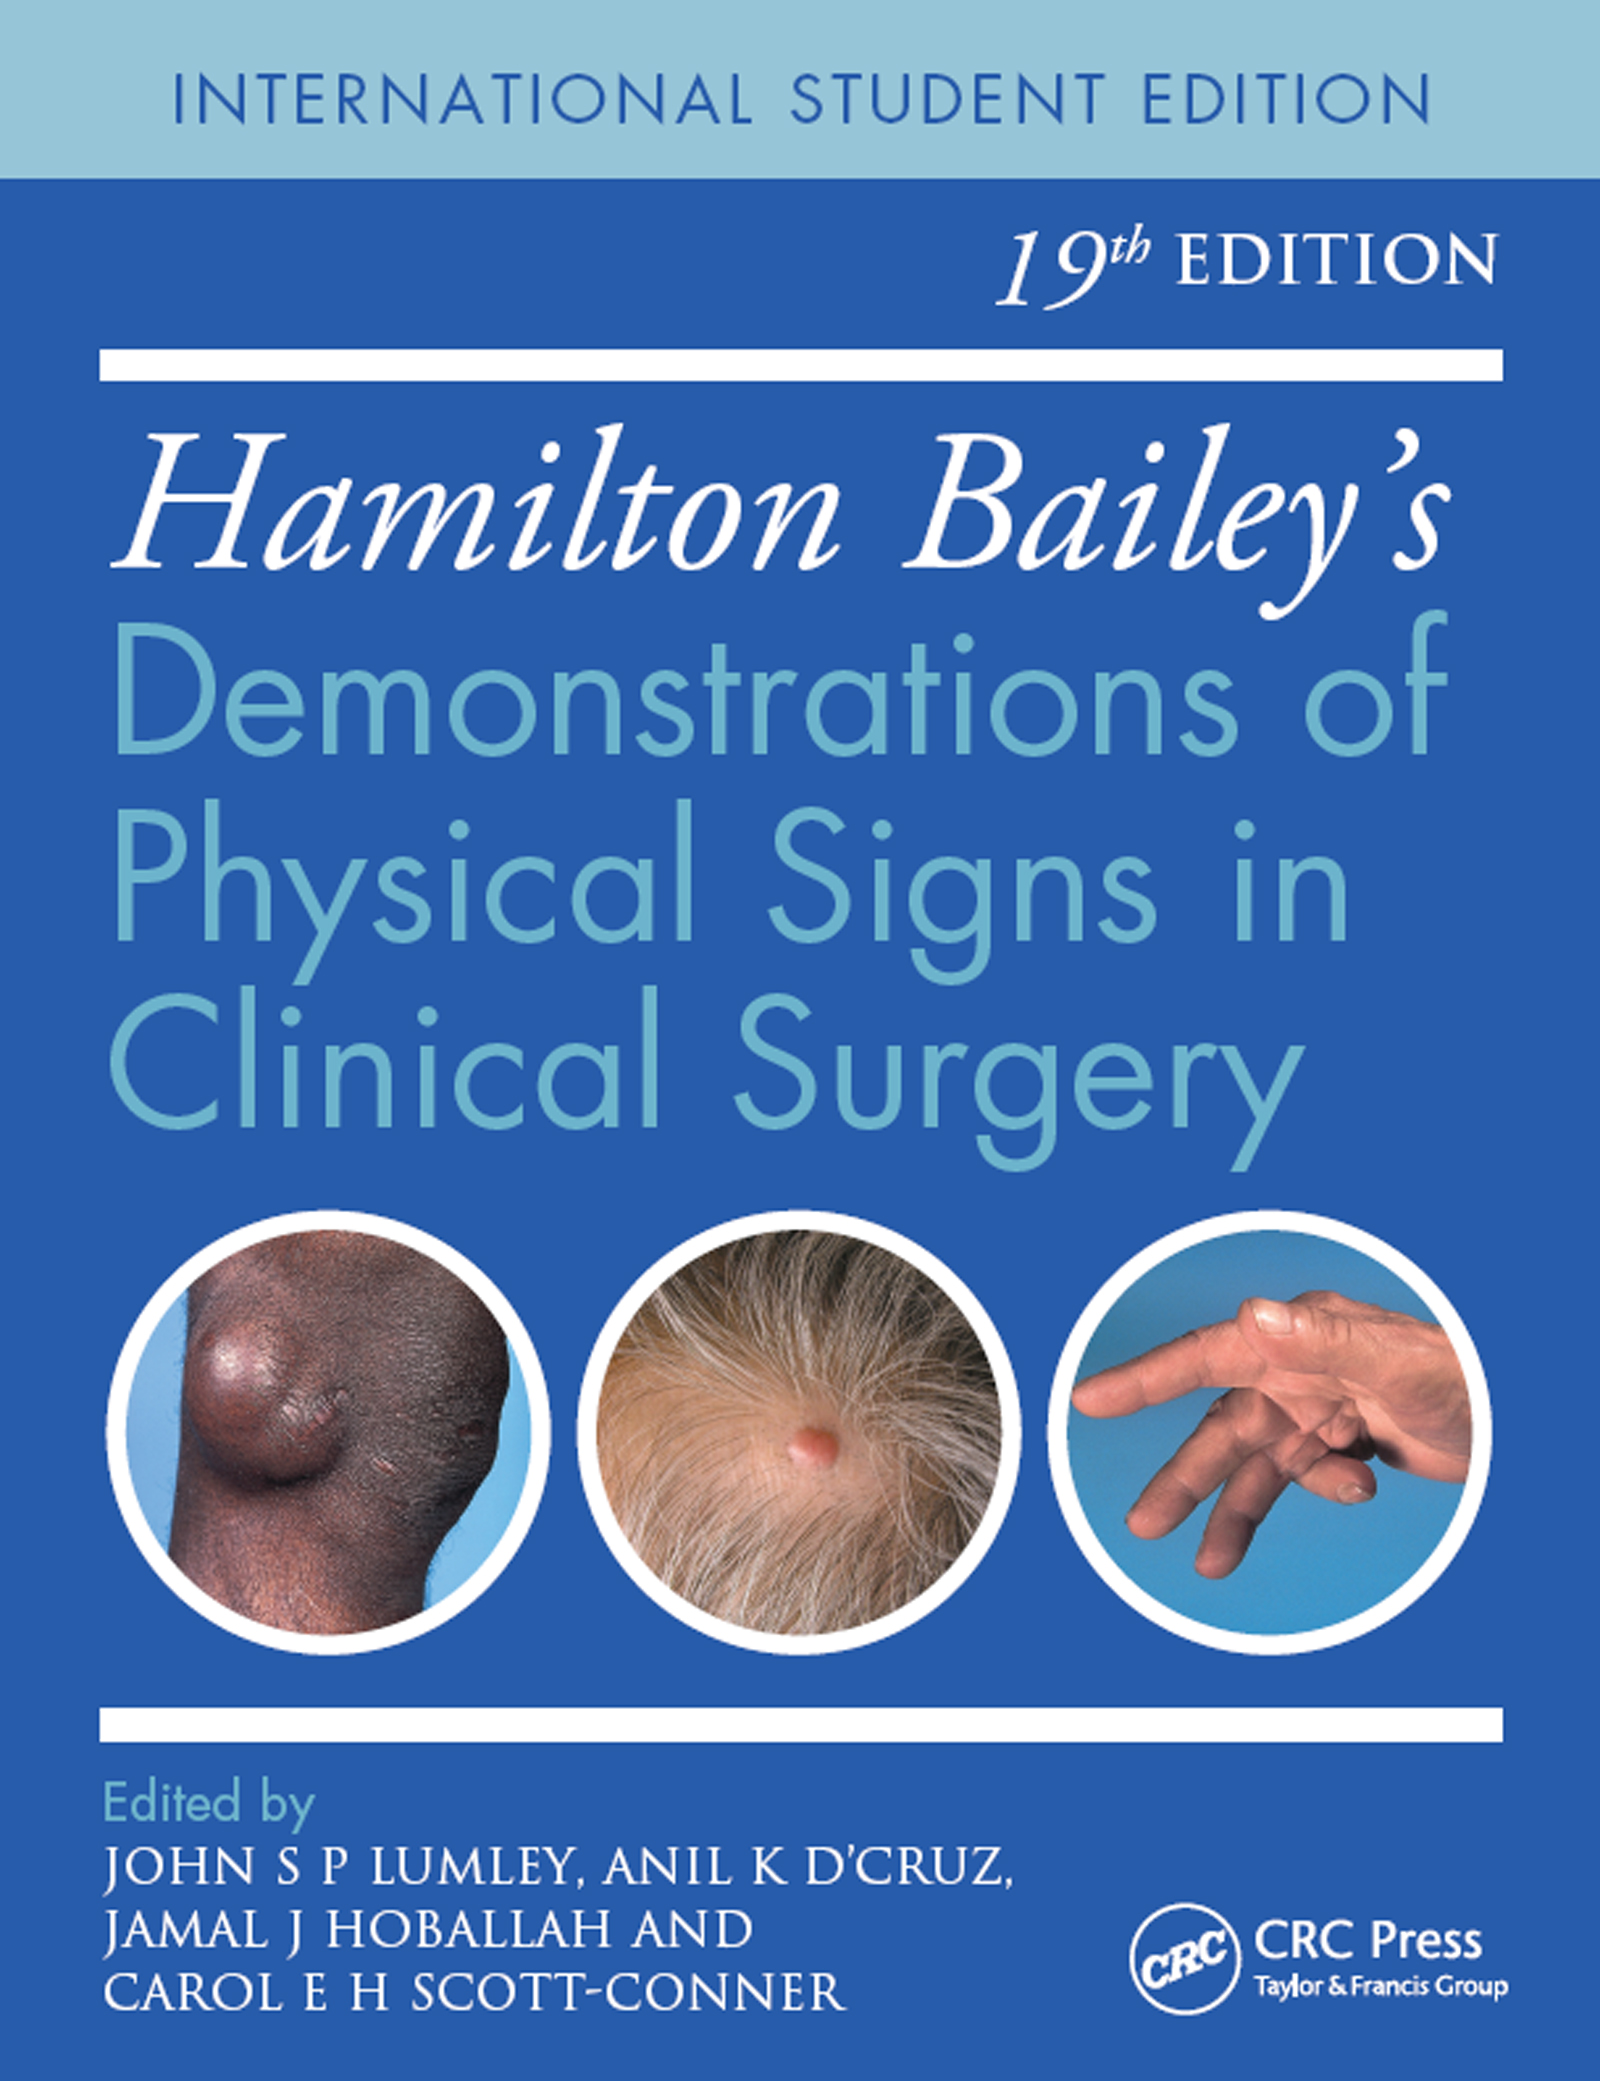 Hamilton Bailey's Physical Signs: Demonstrations of Physical Signs in Clinical Surgery, 19th Edition book cover